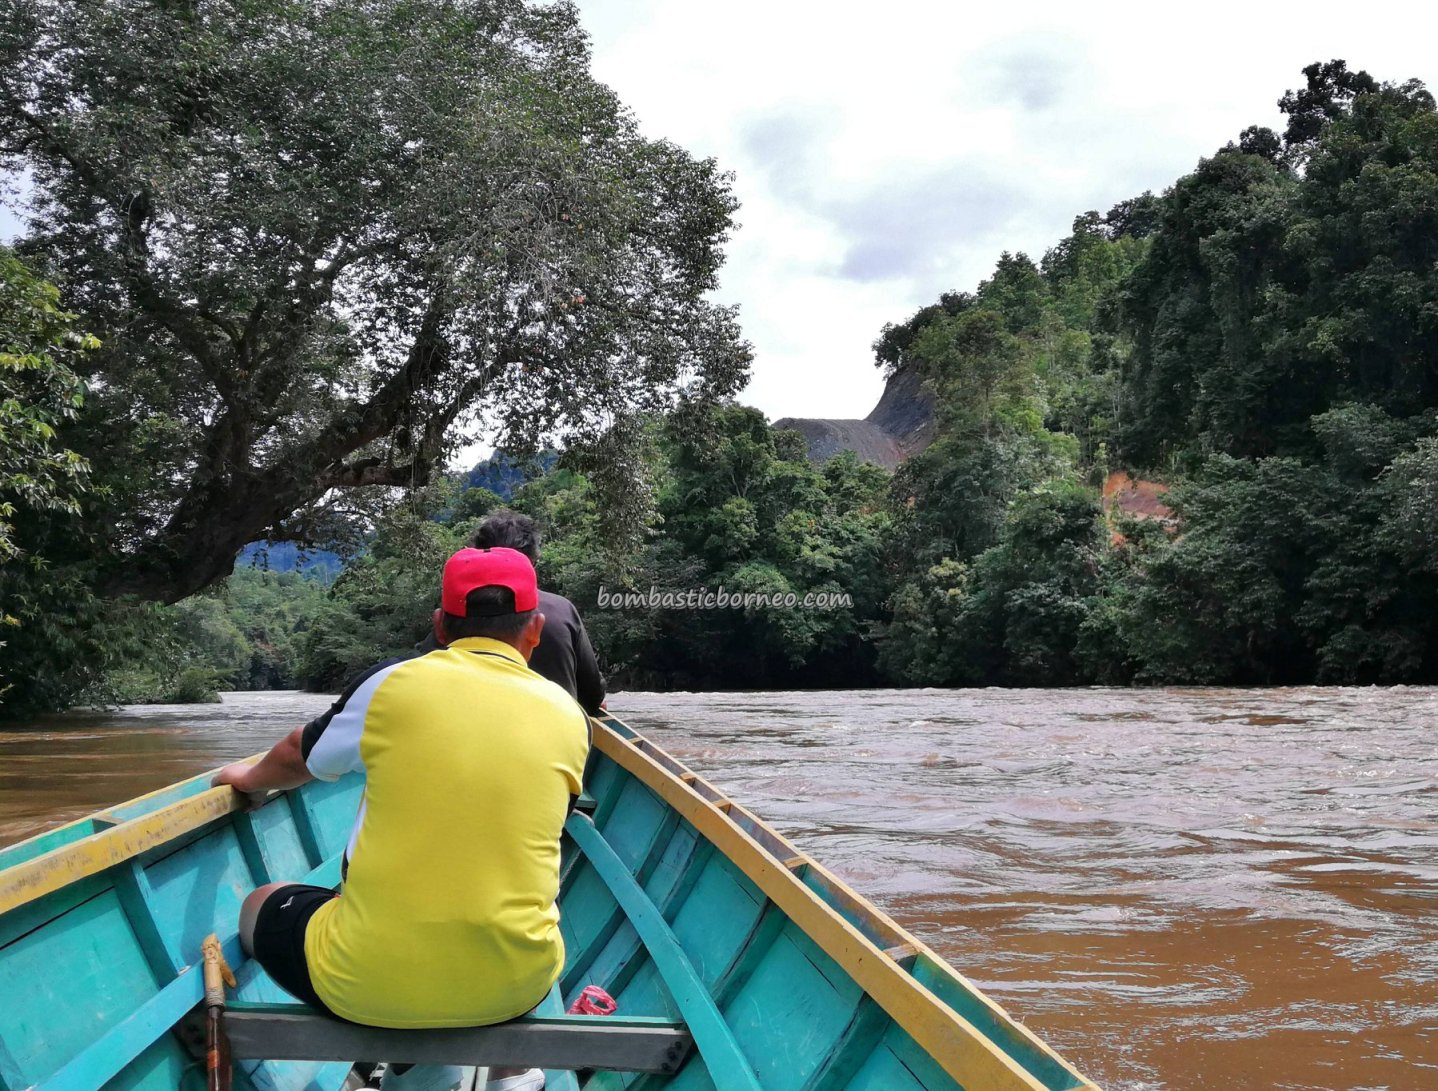 boat ride, Sungai, adventure, nature, outdoor, backpackers, destination, Indonesia, Putussibau Selatan, Tourism, tourist attraction, travel guide, 婆罗洲, 印尼西加里曼丹,